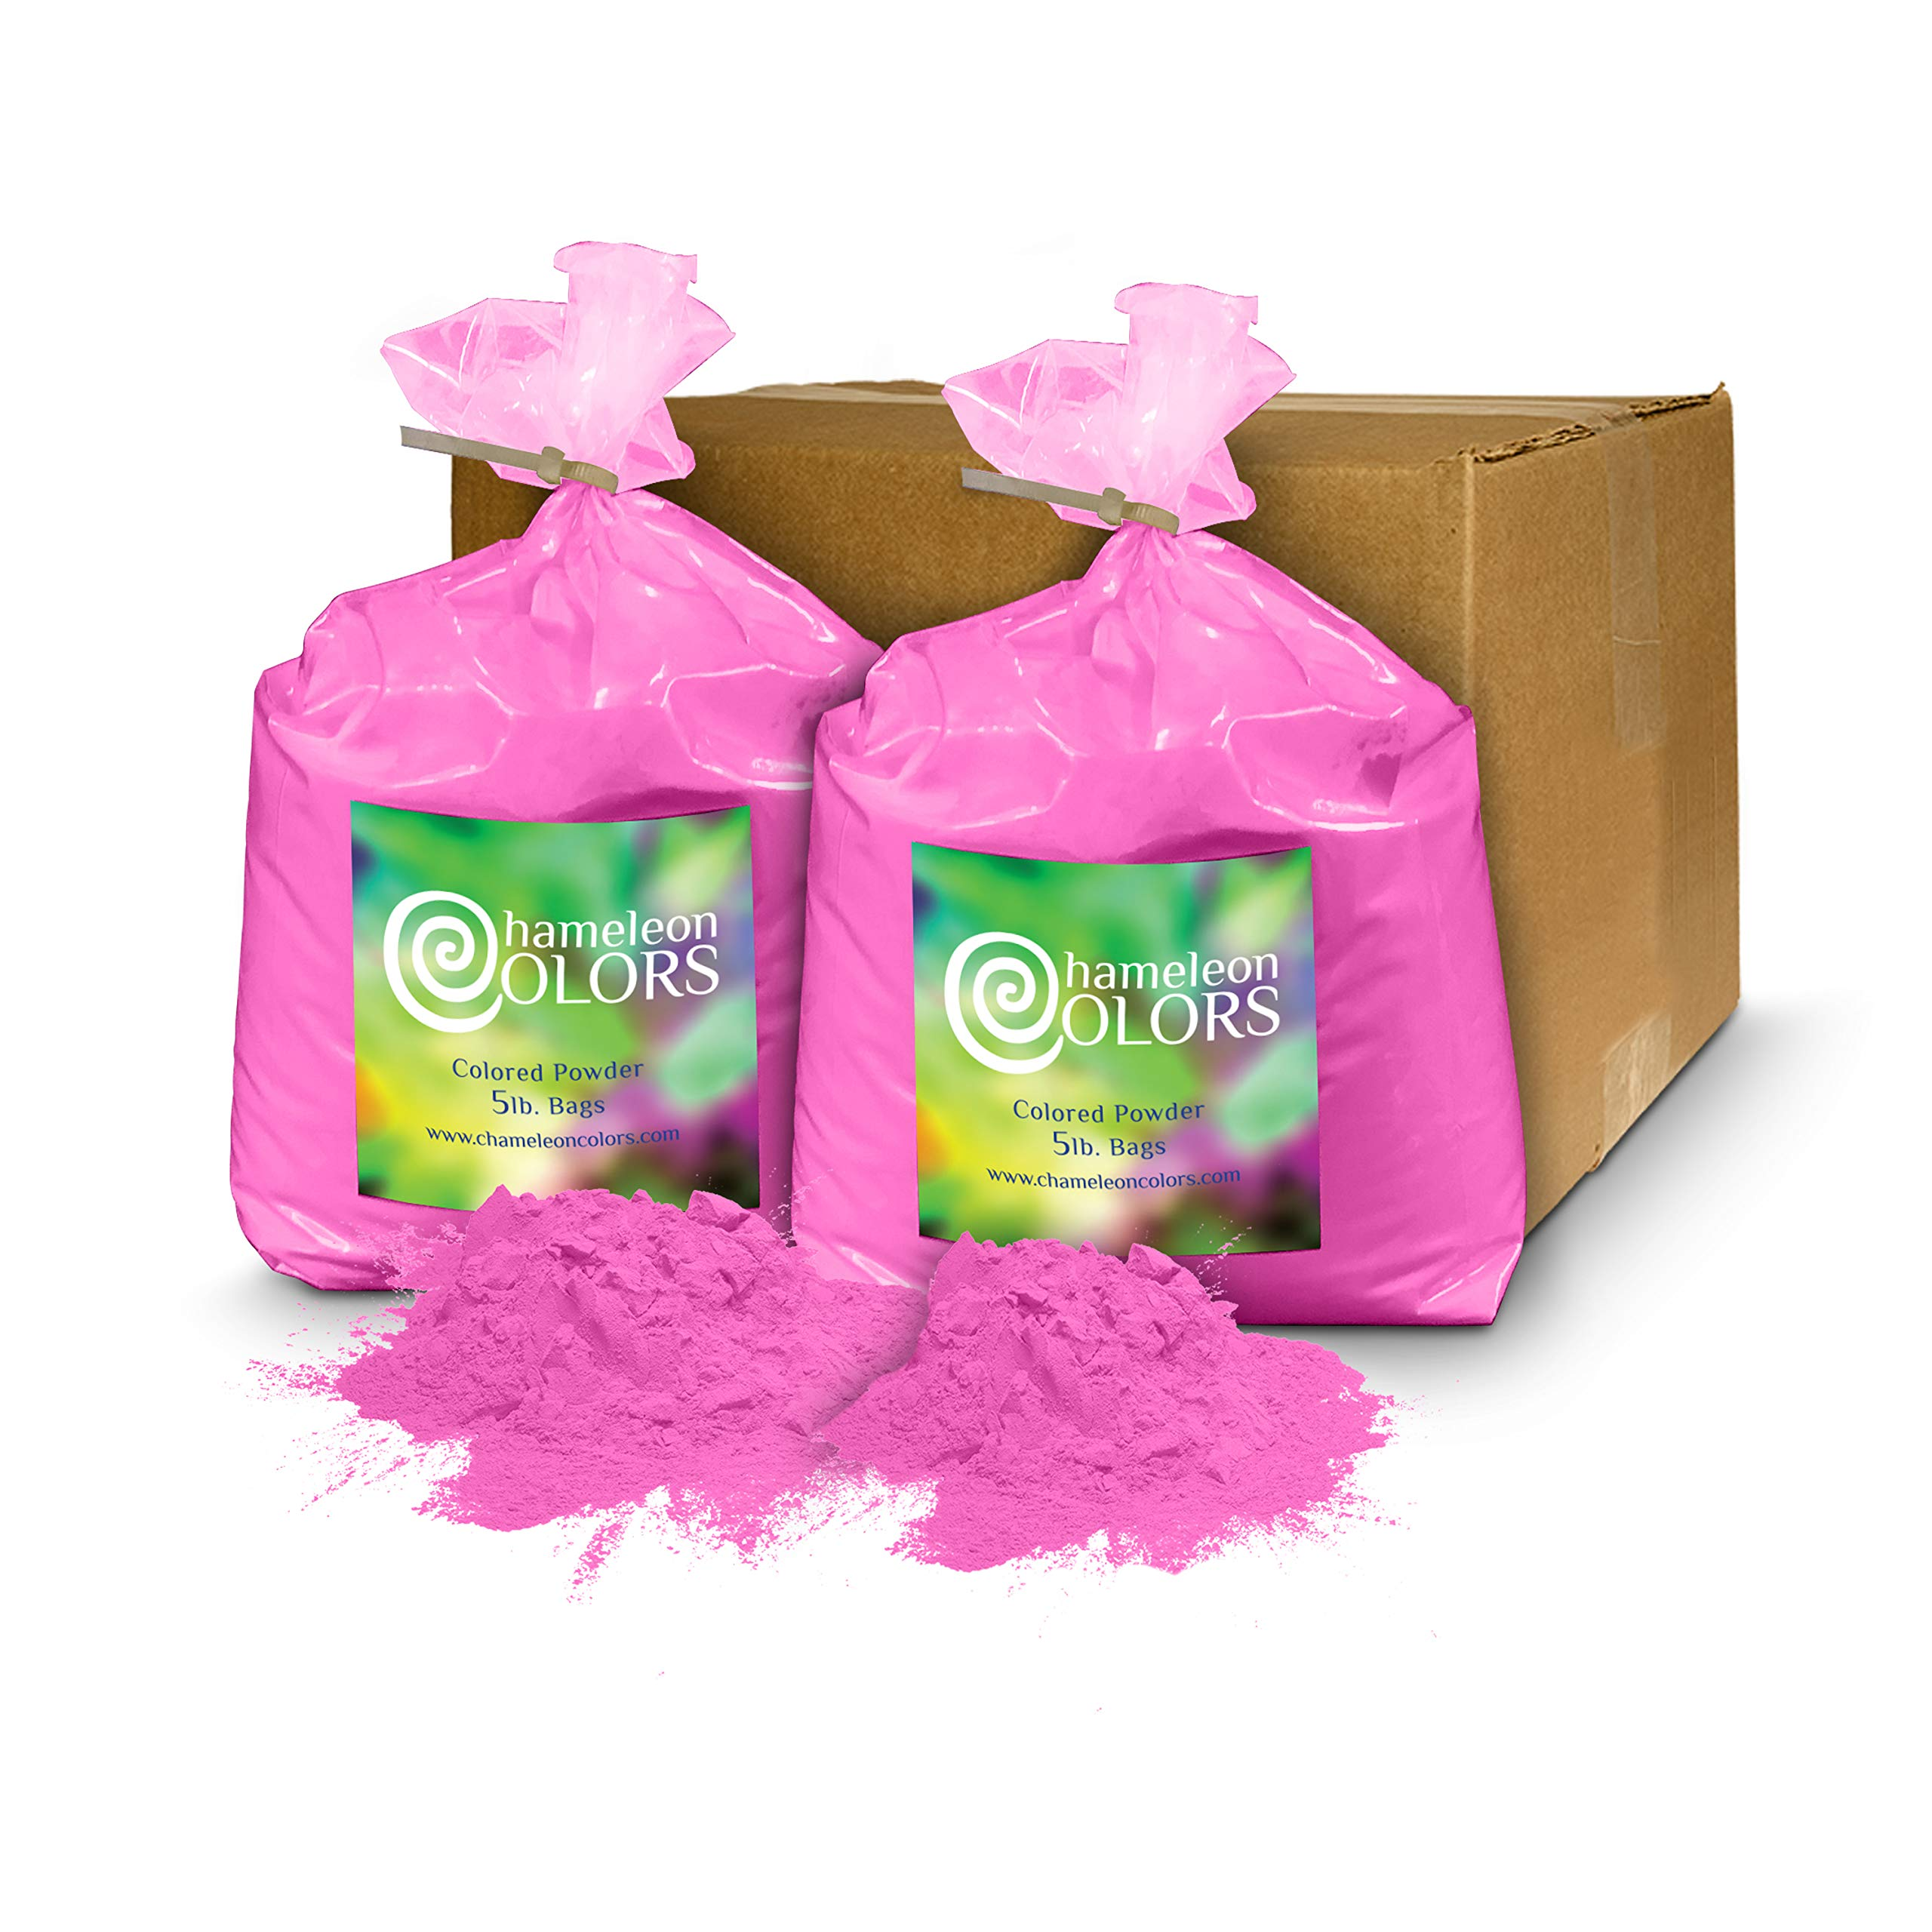 Holi Color Powder Gender Reveal by Chameleon Colors – 10 lbs Pink. Same premium, authentic product used for a color run, 5k, etc.